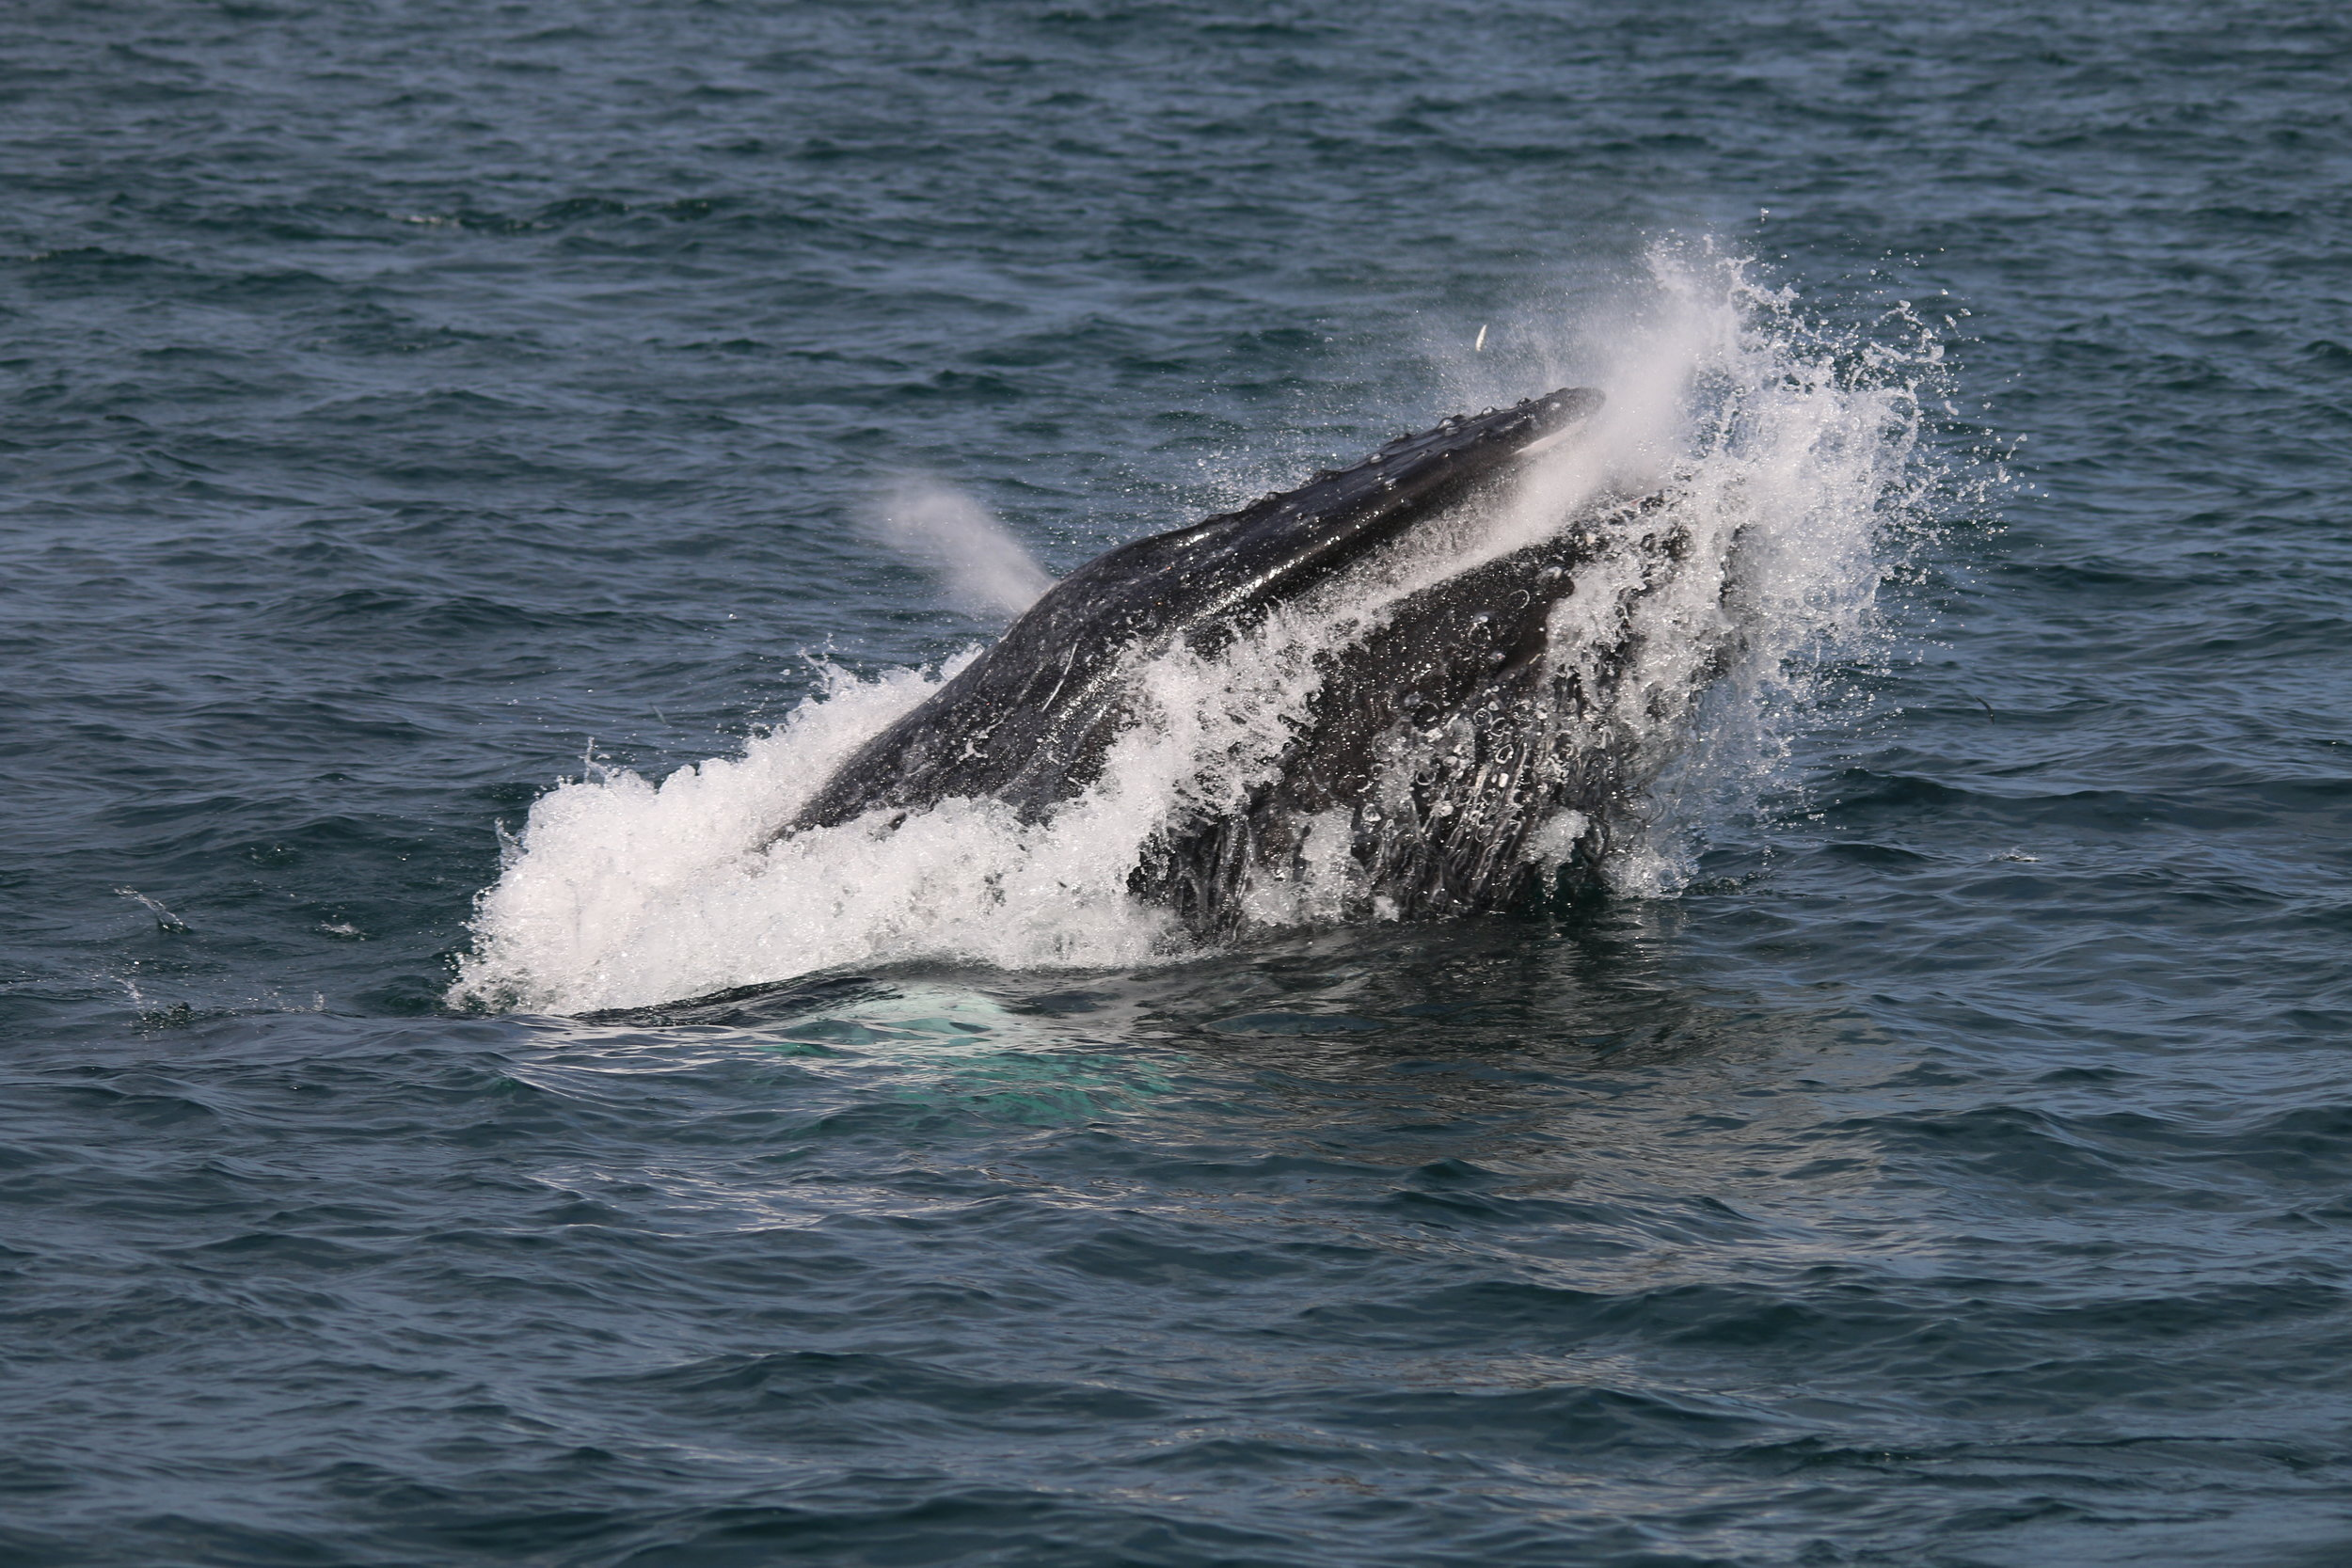 An incredible snapshot of a humpback whale lunge feeding